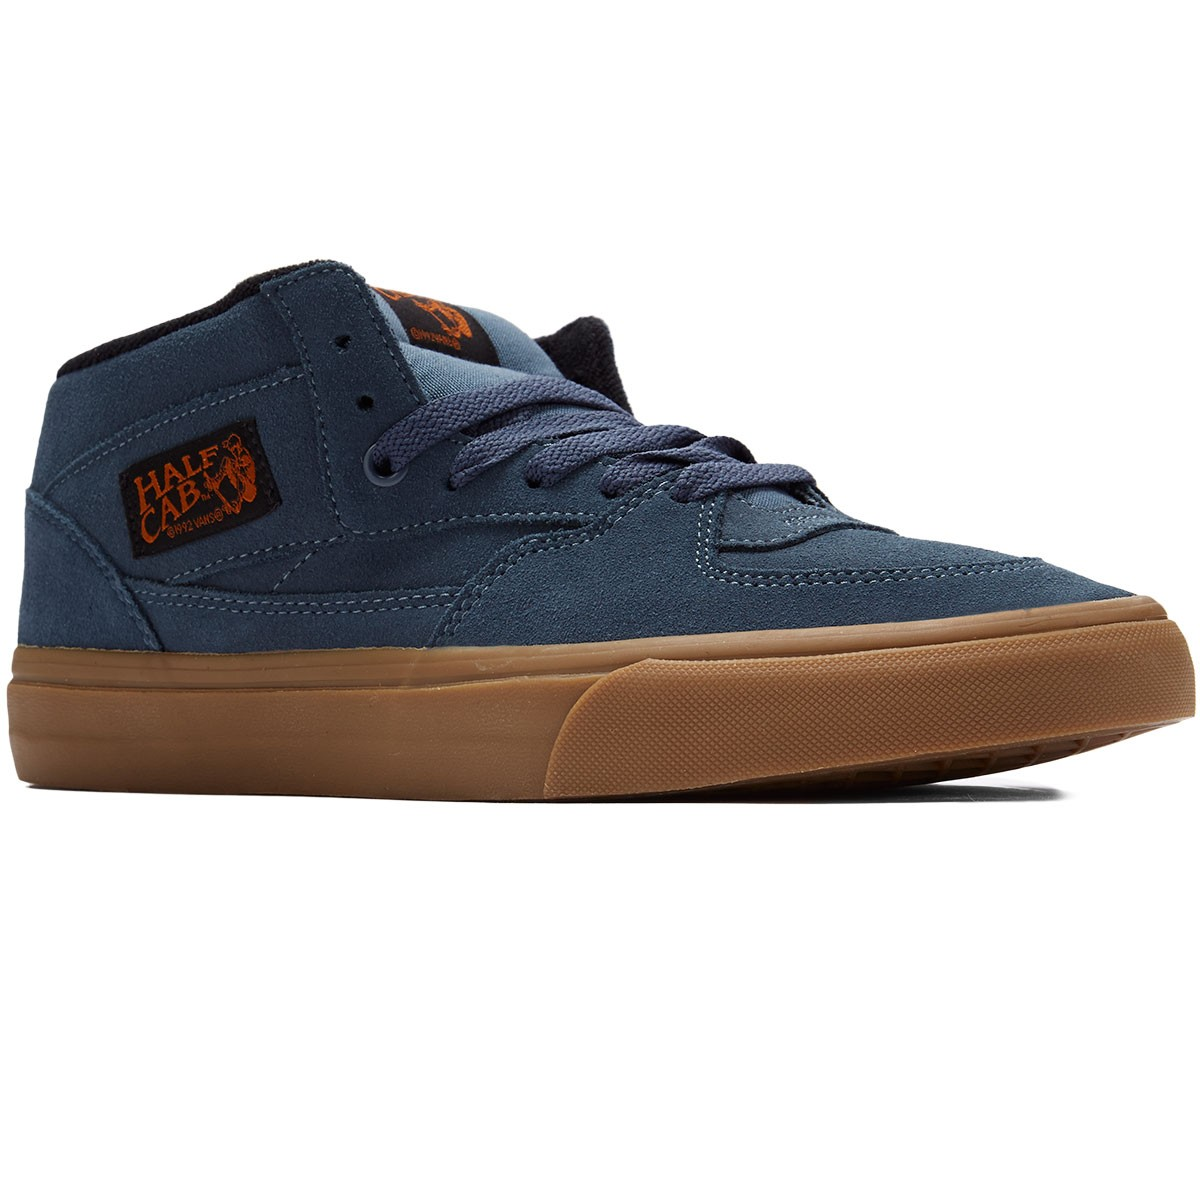 Vans Half Cab Shoes - Dark Slate/Black